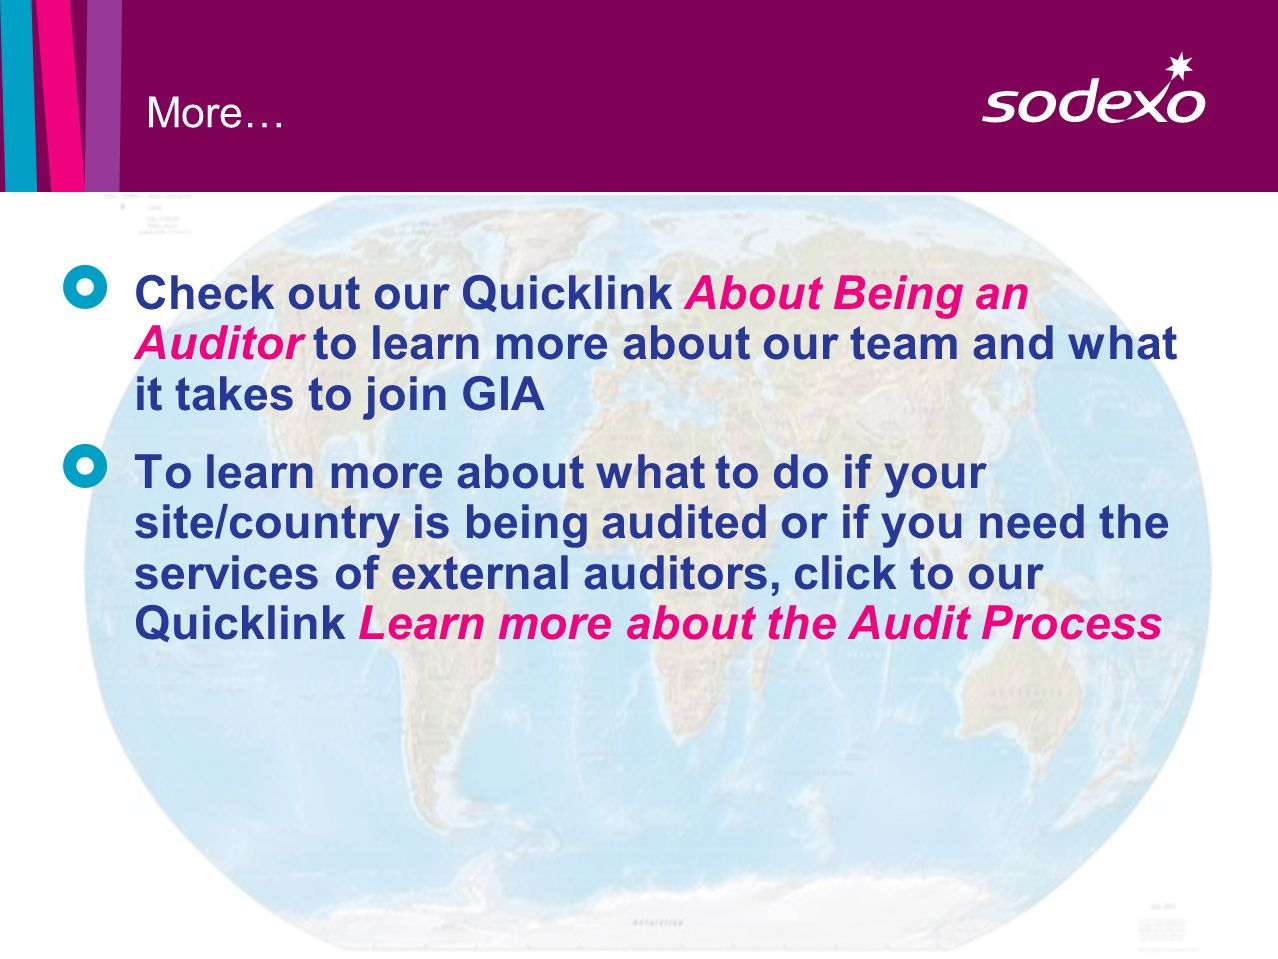 page 7 More…  Check out our Quicklink About Being an Auditor to learn more about our team and what it takes to join GIA  To learn more about what to do if your site/country is being audited or if you need the services of external auditors, click to our Quicklink Learn more about the Audit Process